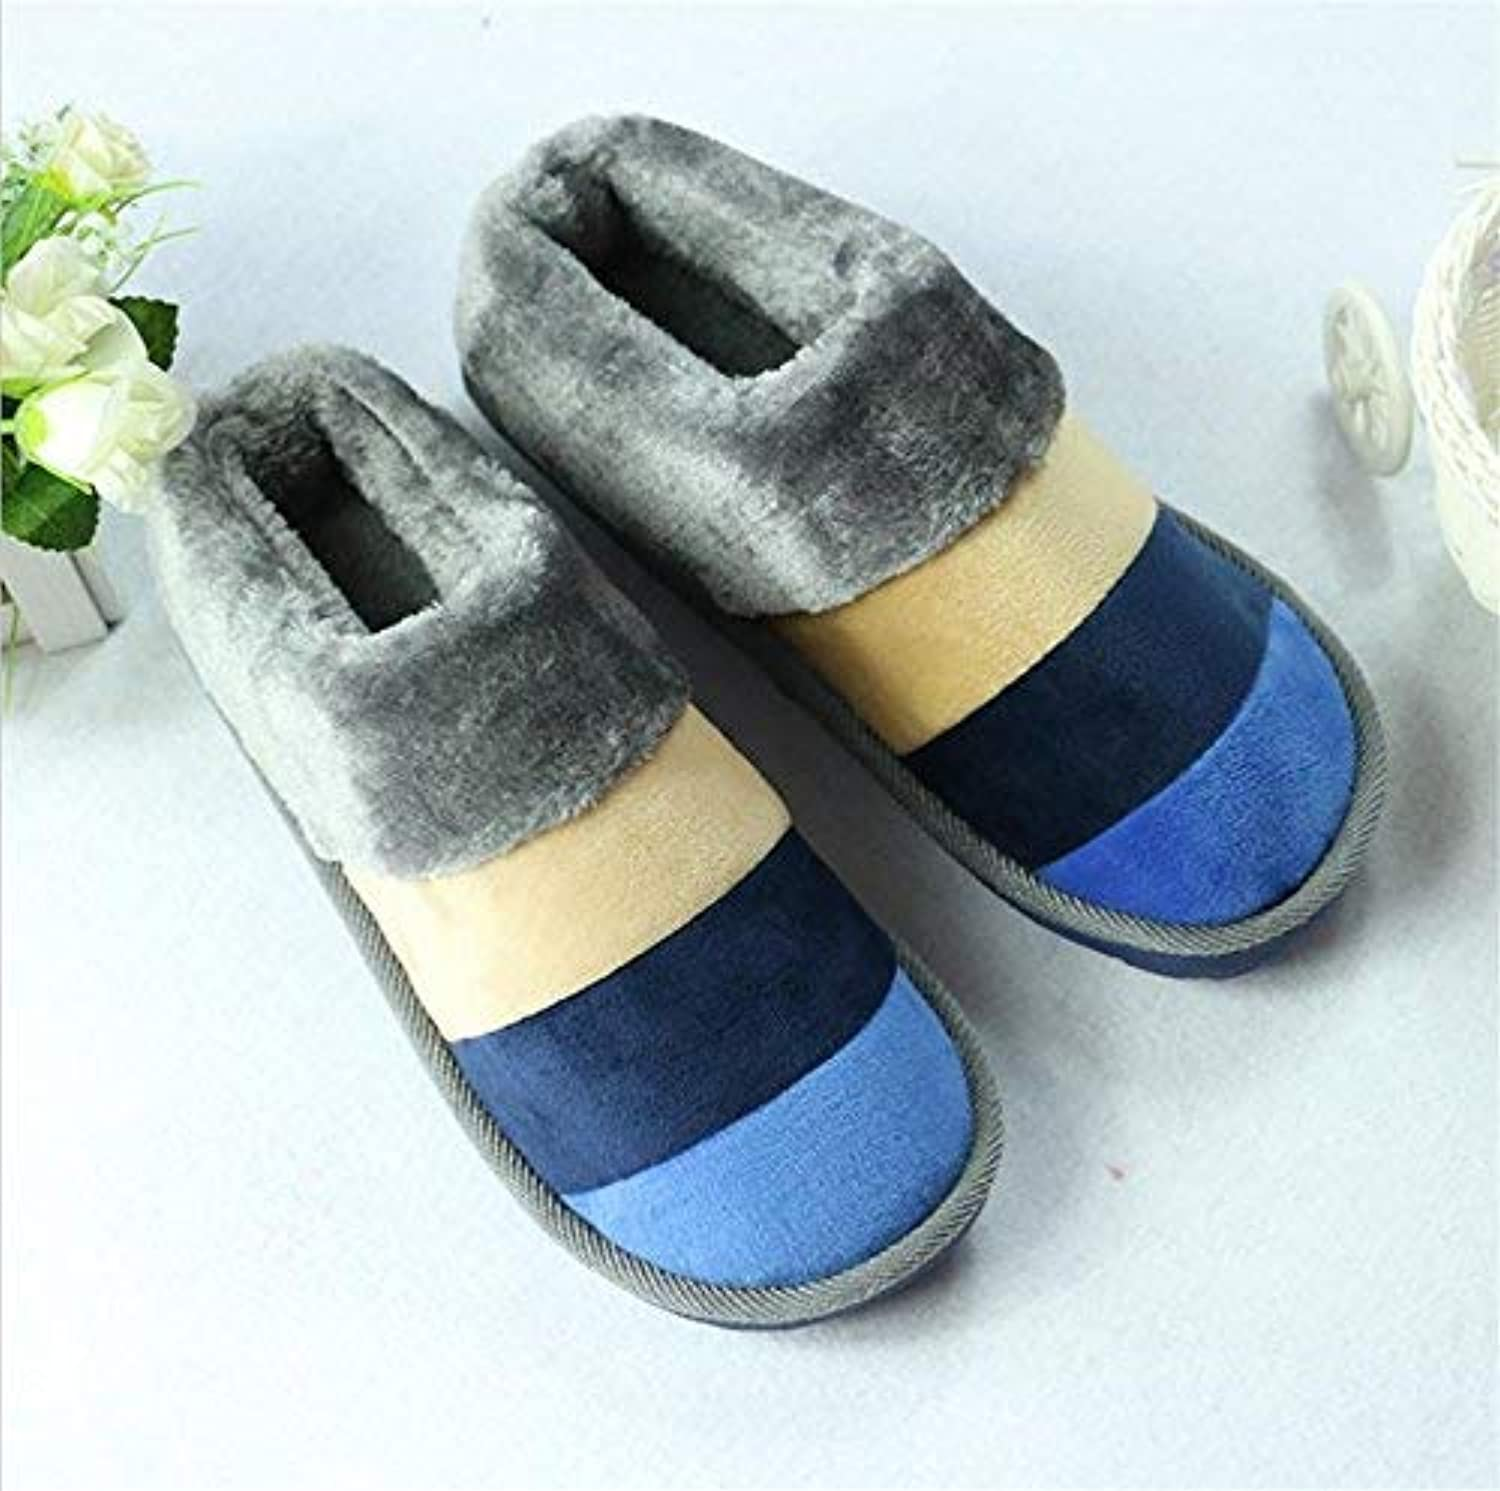 Comfortable Slipper Men's Slippers Home Slippers color Warm in Autumn and Winter Cotton Home Skid bluee Brown Slippers for Men